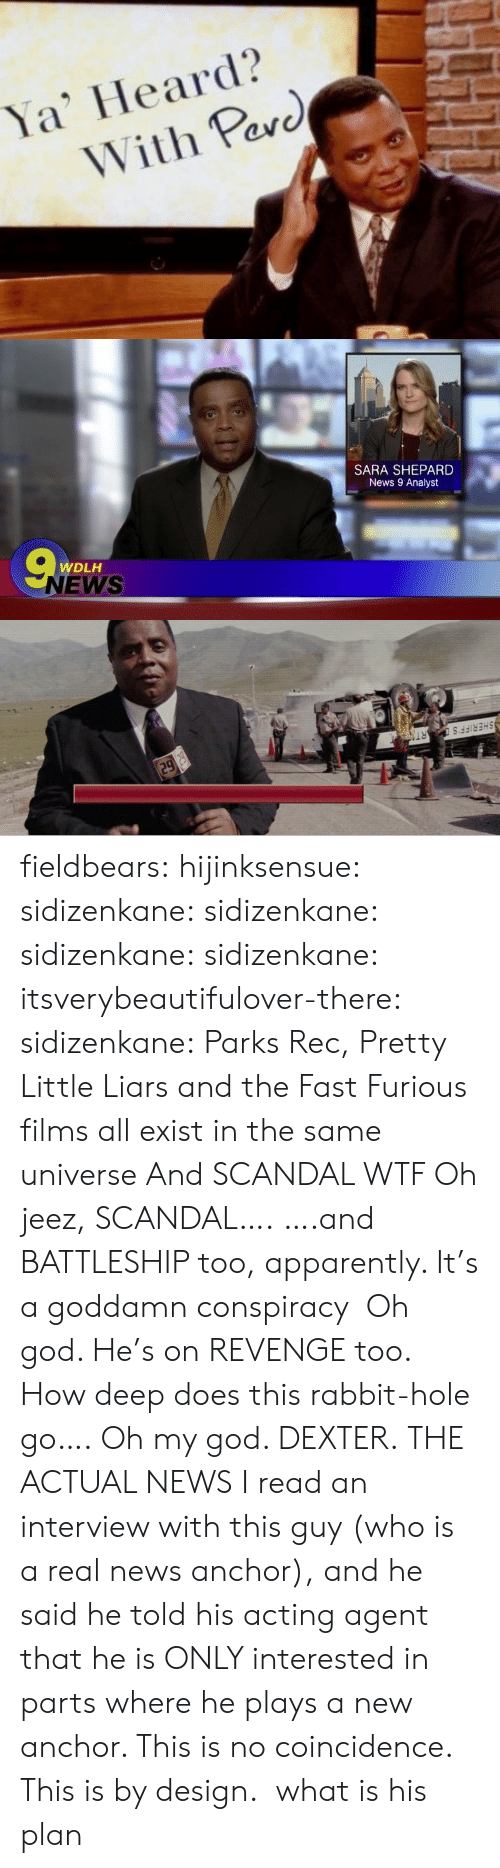 liars: Ya' Heard?  With Pav  arc   SARA SHEPARD  News 9 Analyst  WDLH  NEWS   SHERIFF'  RT fieldbears:  hijinksensue:  sidizenkane:  sidizenkane:  sidizenkane:  sidizenkane:  itsverybeautifulover-there:  sidizenkane:  Parks  Rec, Pretty Little Liars and the Fast  Furious films all exist in the same universe  And SCANDAL WTF  Oh jeez, SCANDAL…. ….and BATTLESHIP too, apparently. It's a goddamn conspiracy  Oh god. He's on REVENGE too. How deep does this rabbit-hole go….  Oh my god. DEXTER.  THE ACTUAL NEWS  I read an interview with this guy (who is a real news anchor), and he said he told his acting agent that he is ONLY interested in parts where he plays a new anchor. This is no coincidence. This is by design.  what is his plan